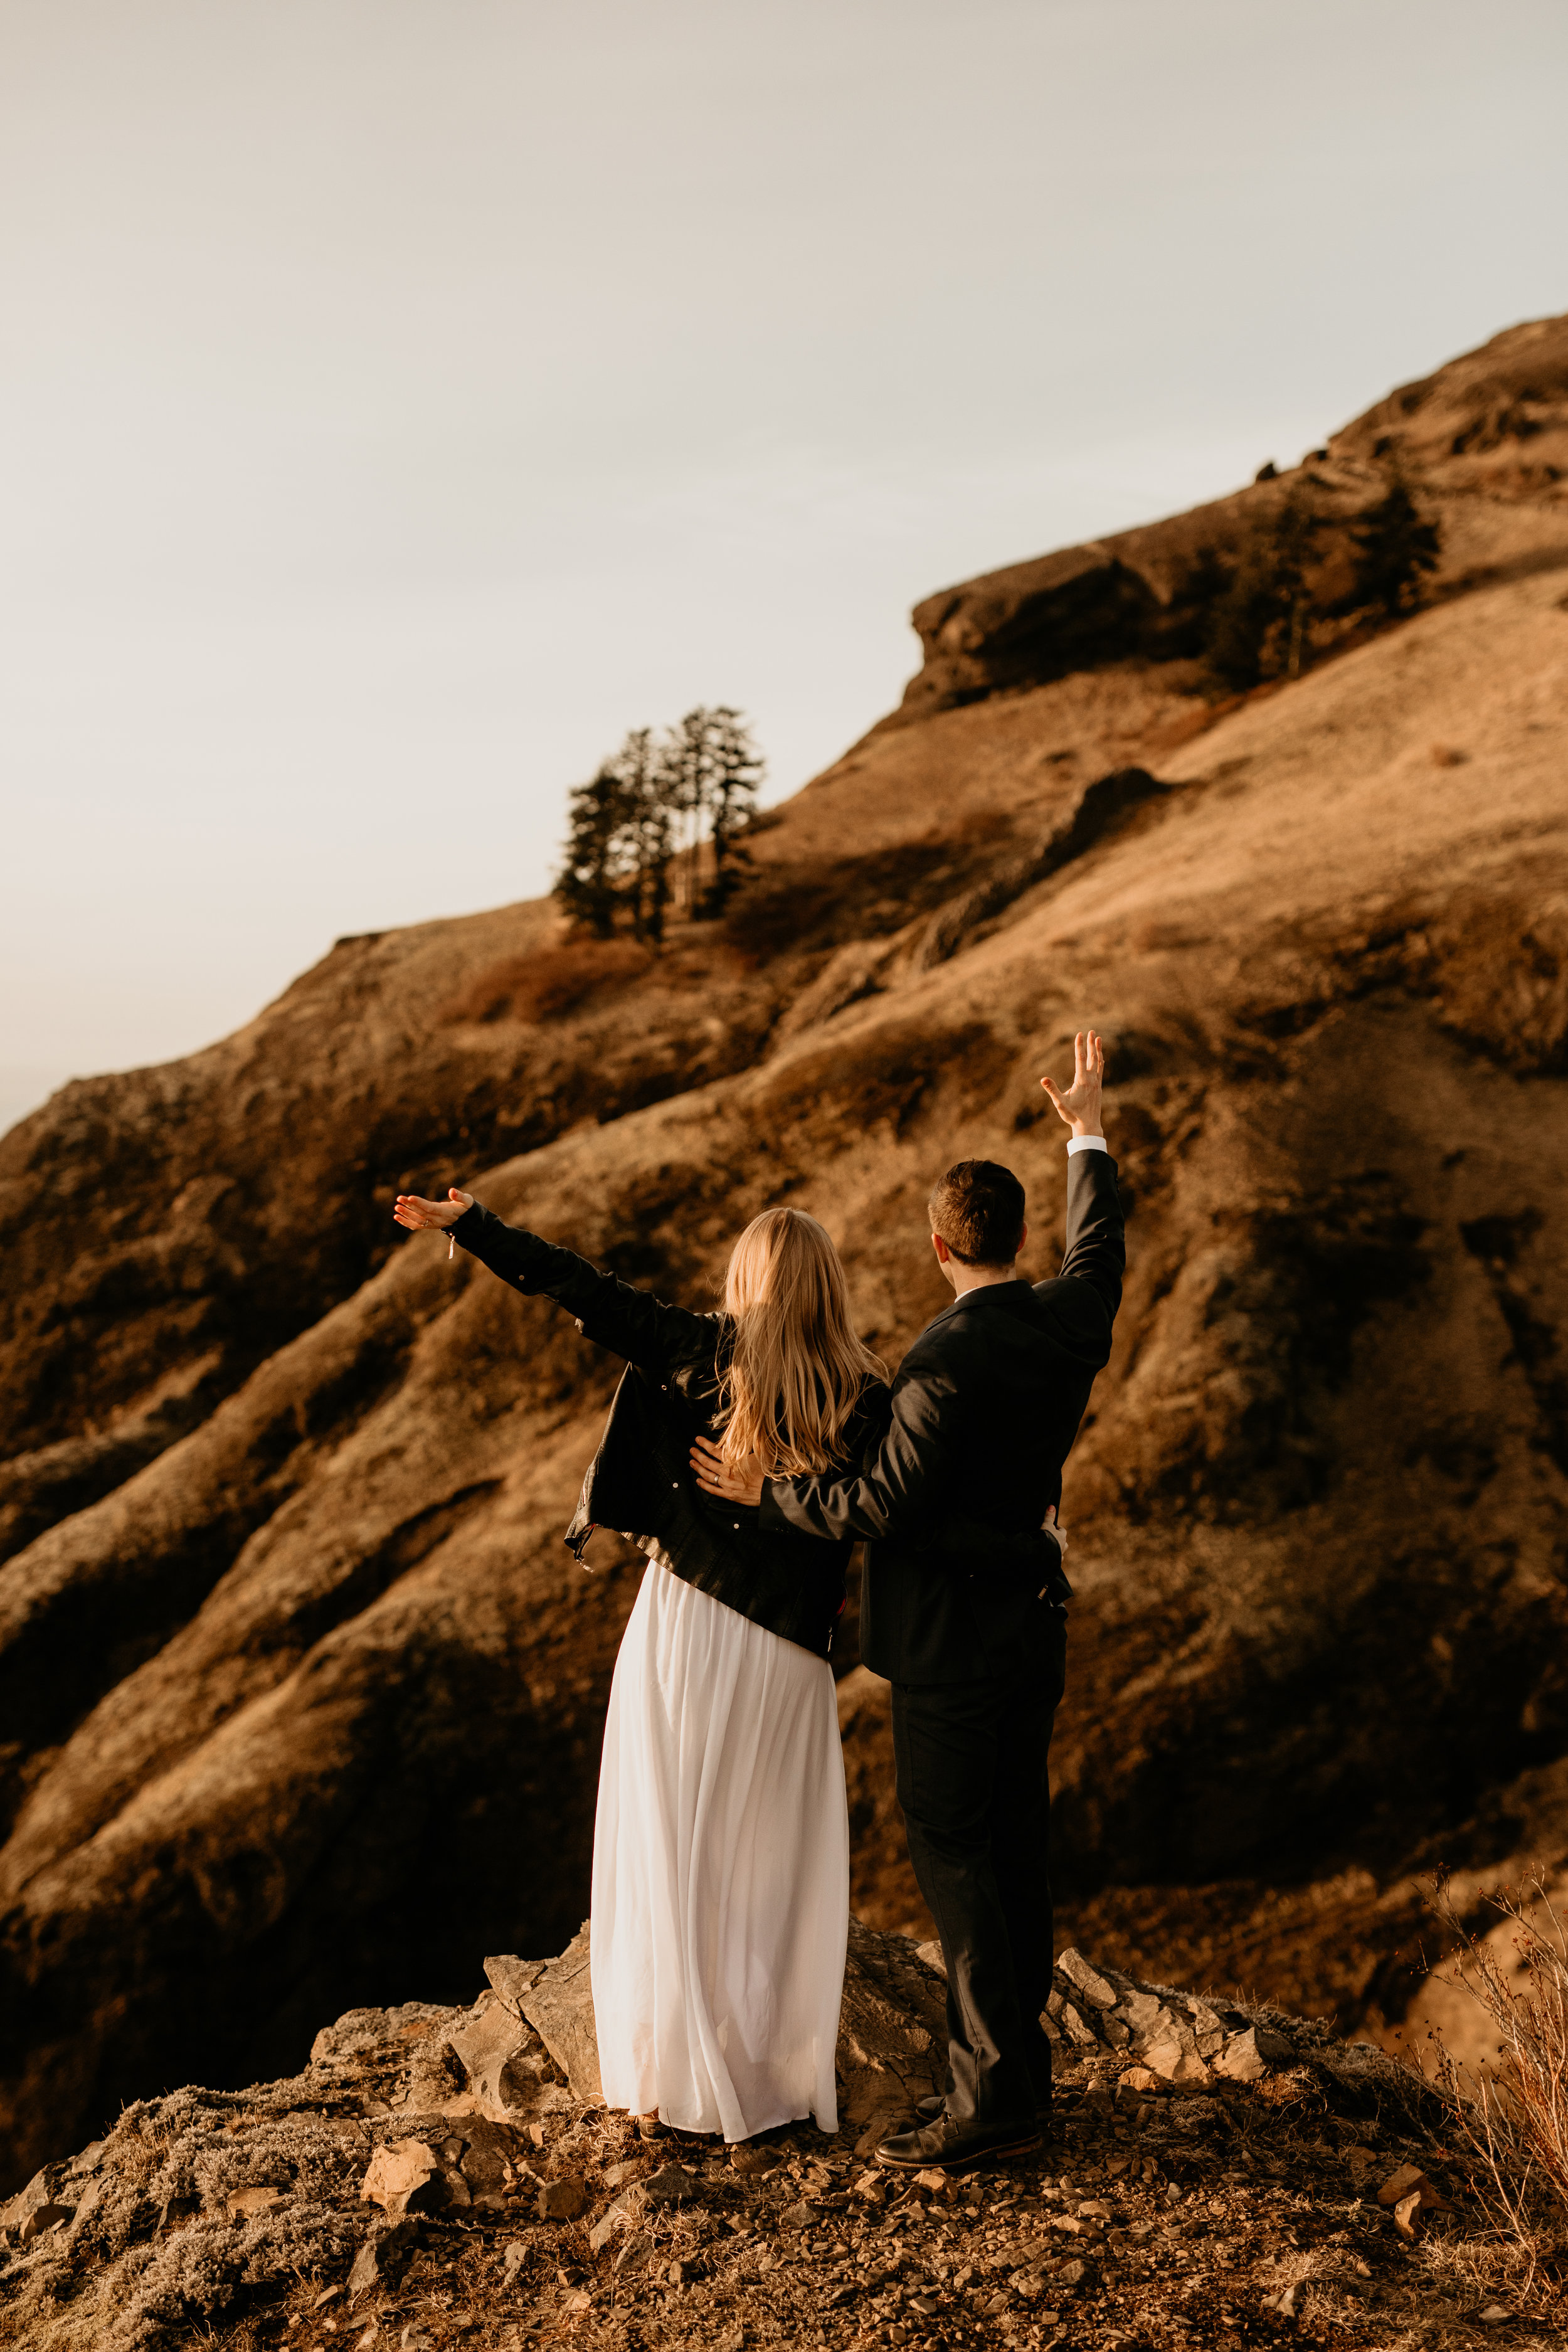 Oregon coast elopement Check out this adventure elopement blog for elopement ideas, adventure wedding dresses, groom attire, elopement tips, boho bouquets, elopement hairstyles, and the best elopement destinations. All images by BreeAnna Lasher // www.elevenelevenfilms.org   #wedding       #elopement     #adventureelopement       #elopementdestinations